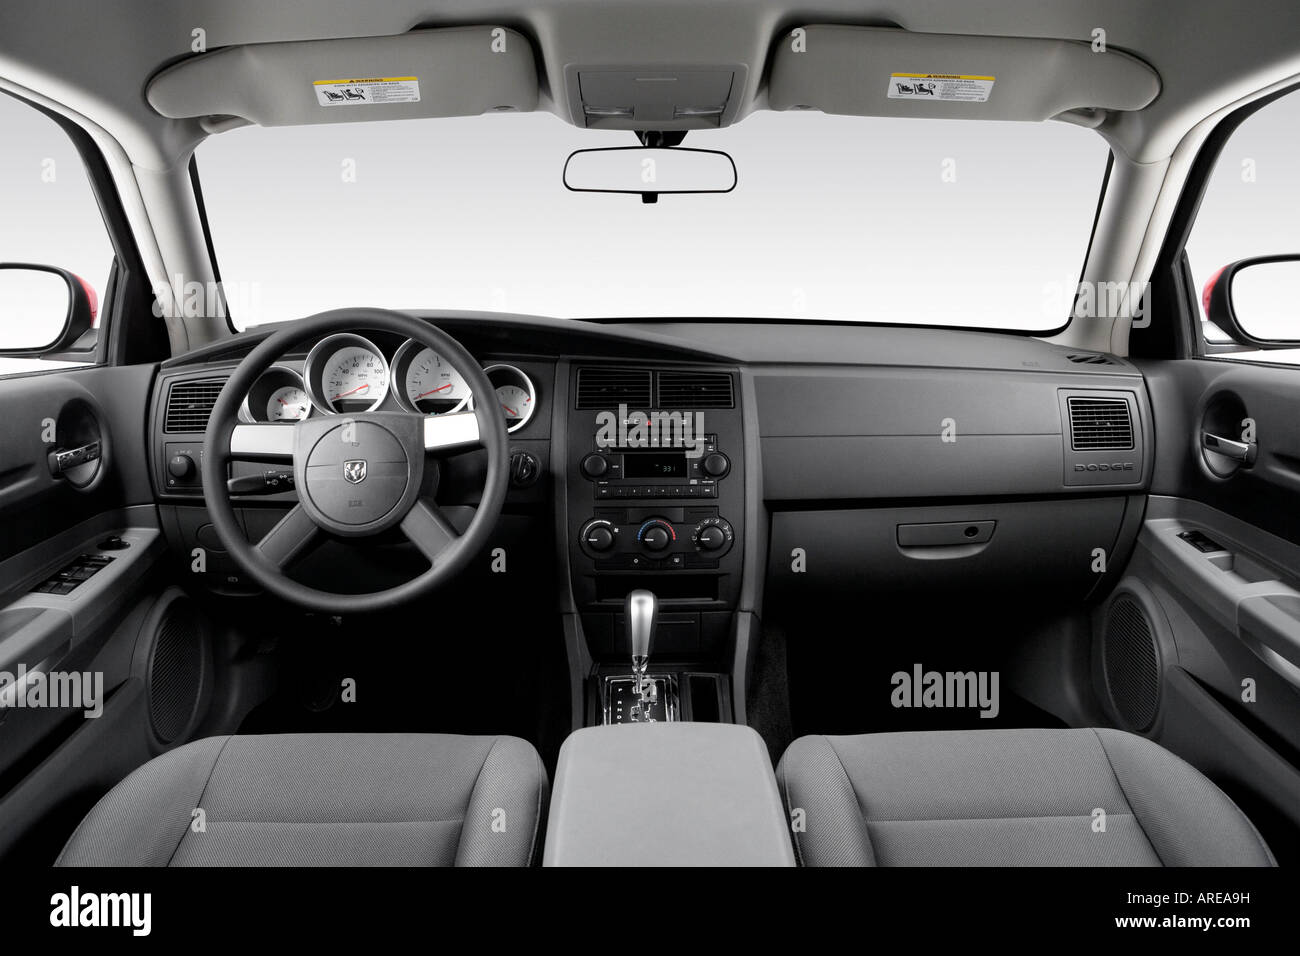 2005 Dodge Magnum Sxt In Red Dashboard Center Console Gear Stock Photo Alamy